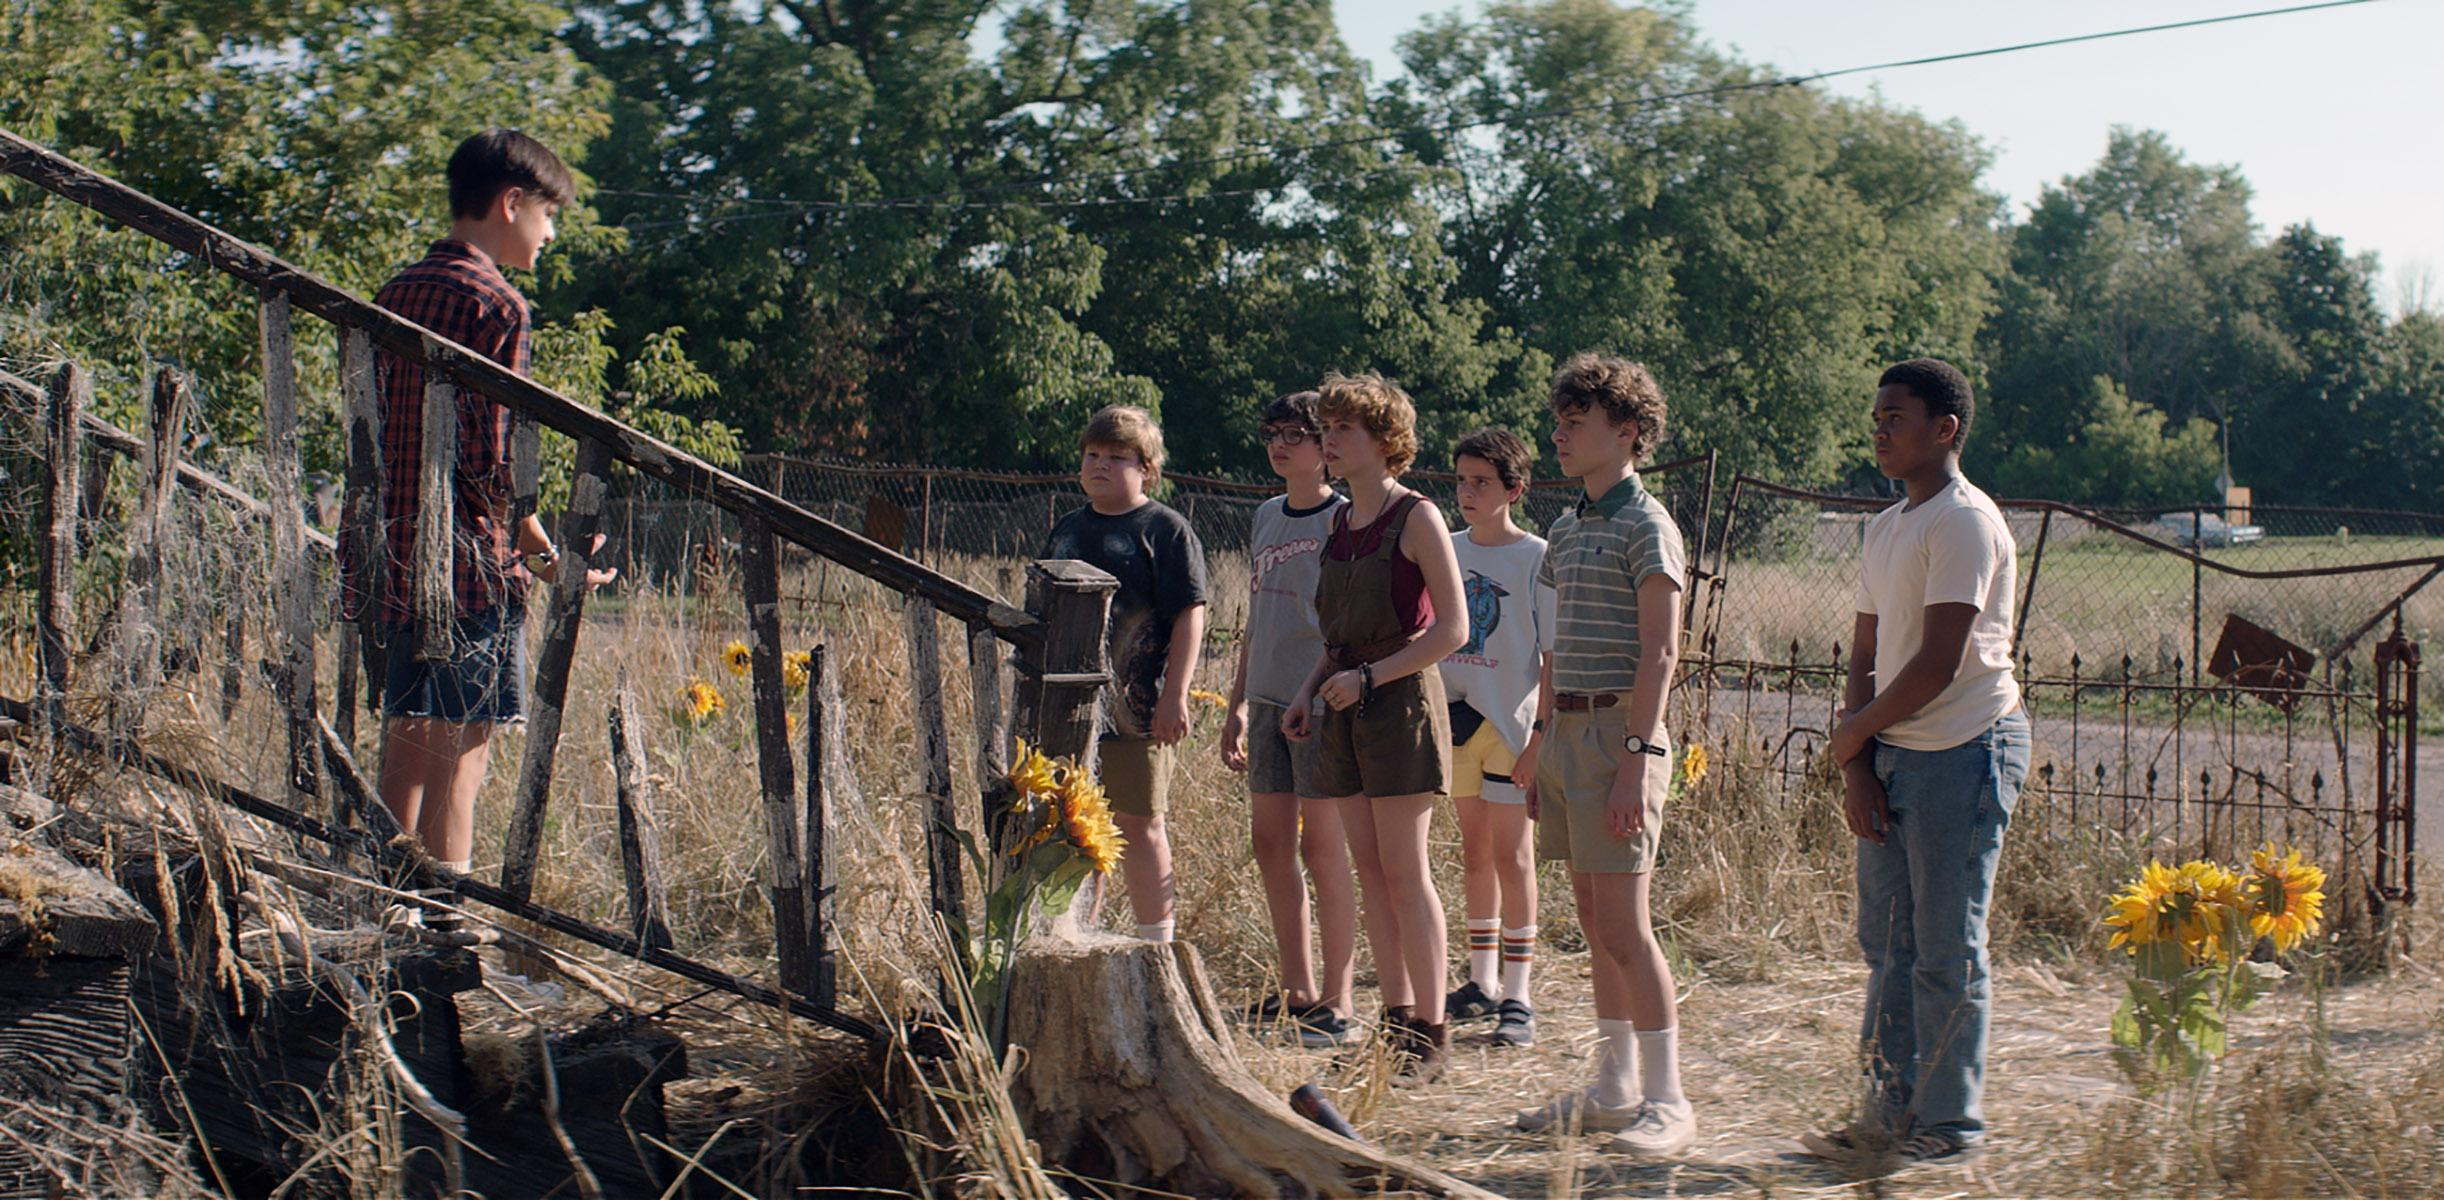 "(L-r) JAEDEN LIEBERHER as Bill Denbrough, JEREMY RAY TAYLOR as Ben Hanscom, FINN WOLFHARD as Richie Tozier, SOPHIA LILLIS as Beverly Marsh, JACK DYLAN GRAZER as Eddie Kaspbrak, WYATT OLEFF as Stanley Uris and CHOSEN JACOBS as Mike Hanlon in New Line Cinema's horror thriller ""IT,"" a Warner Bros. Pictures release. Photo Credit: Brooke Palmer"